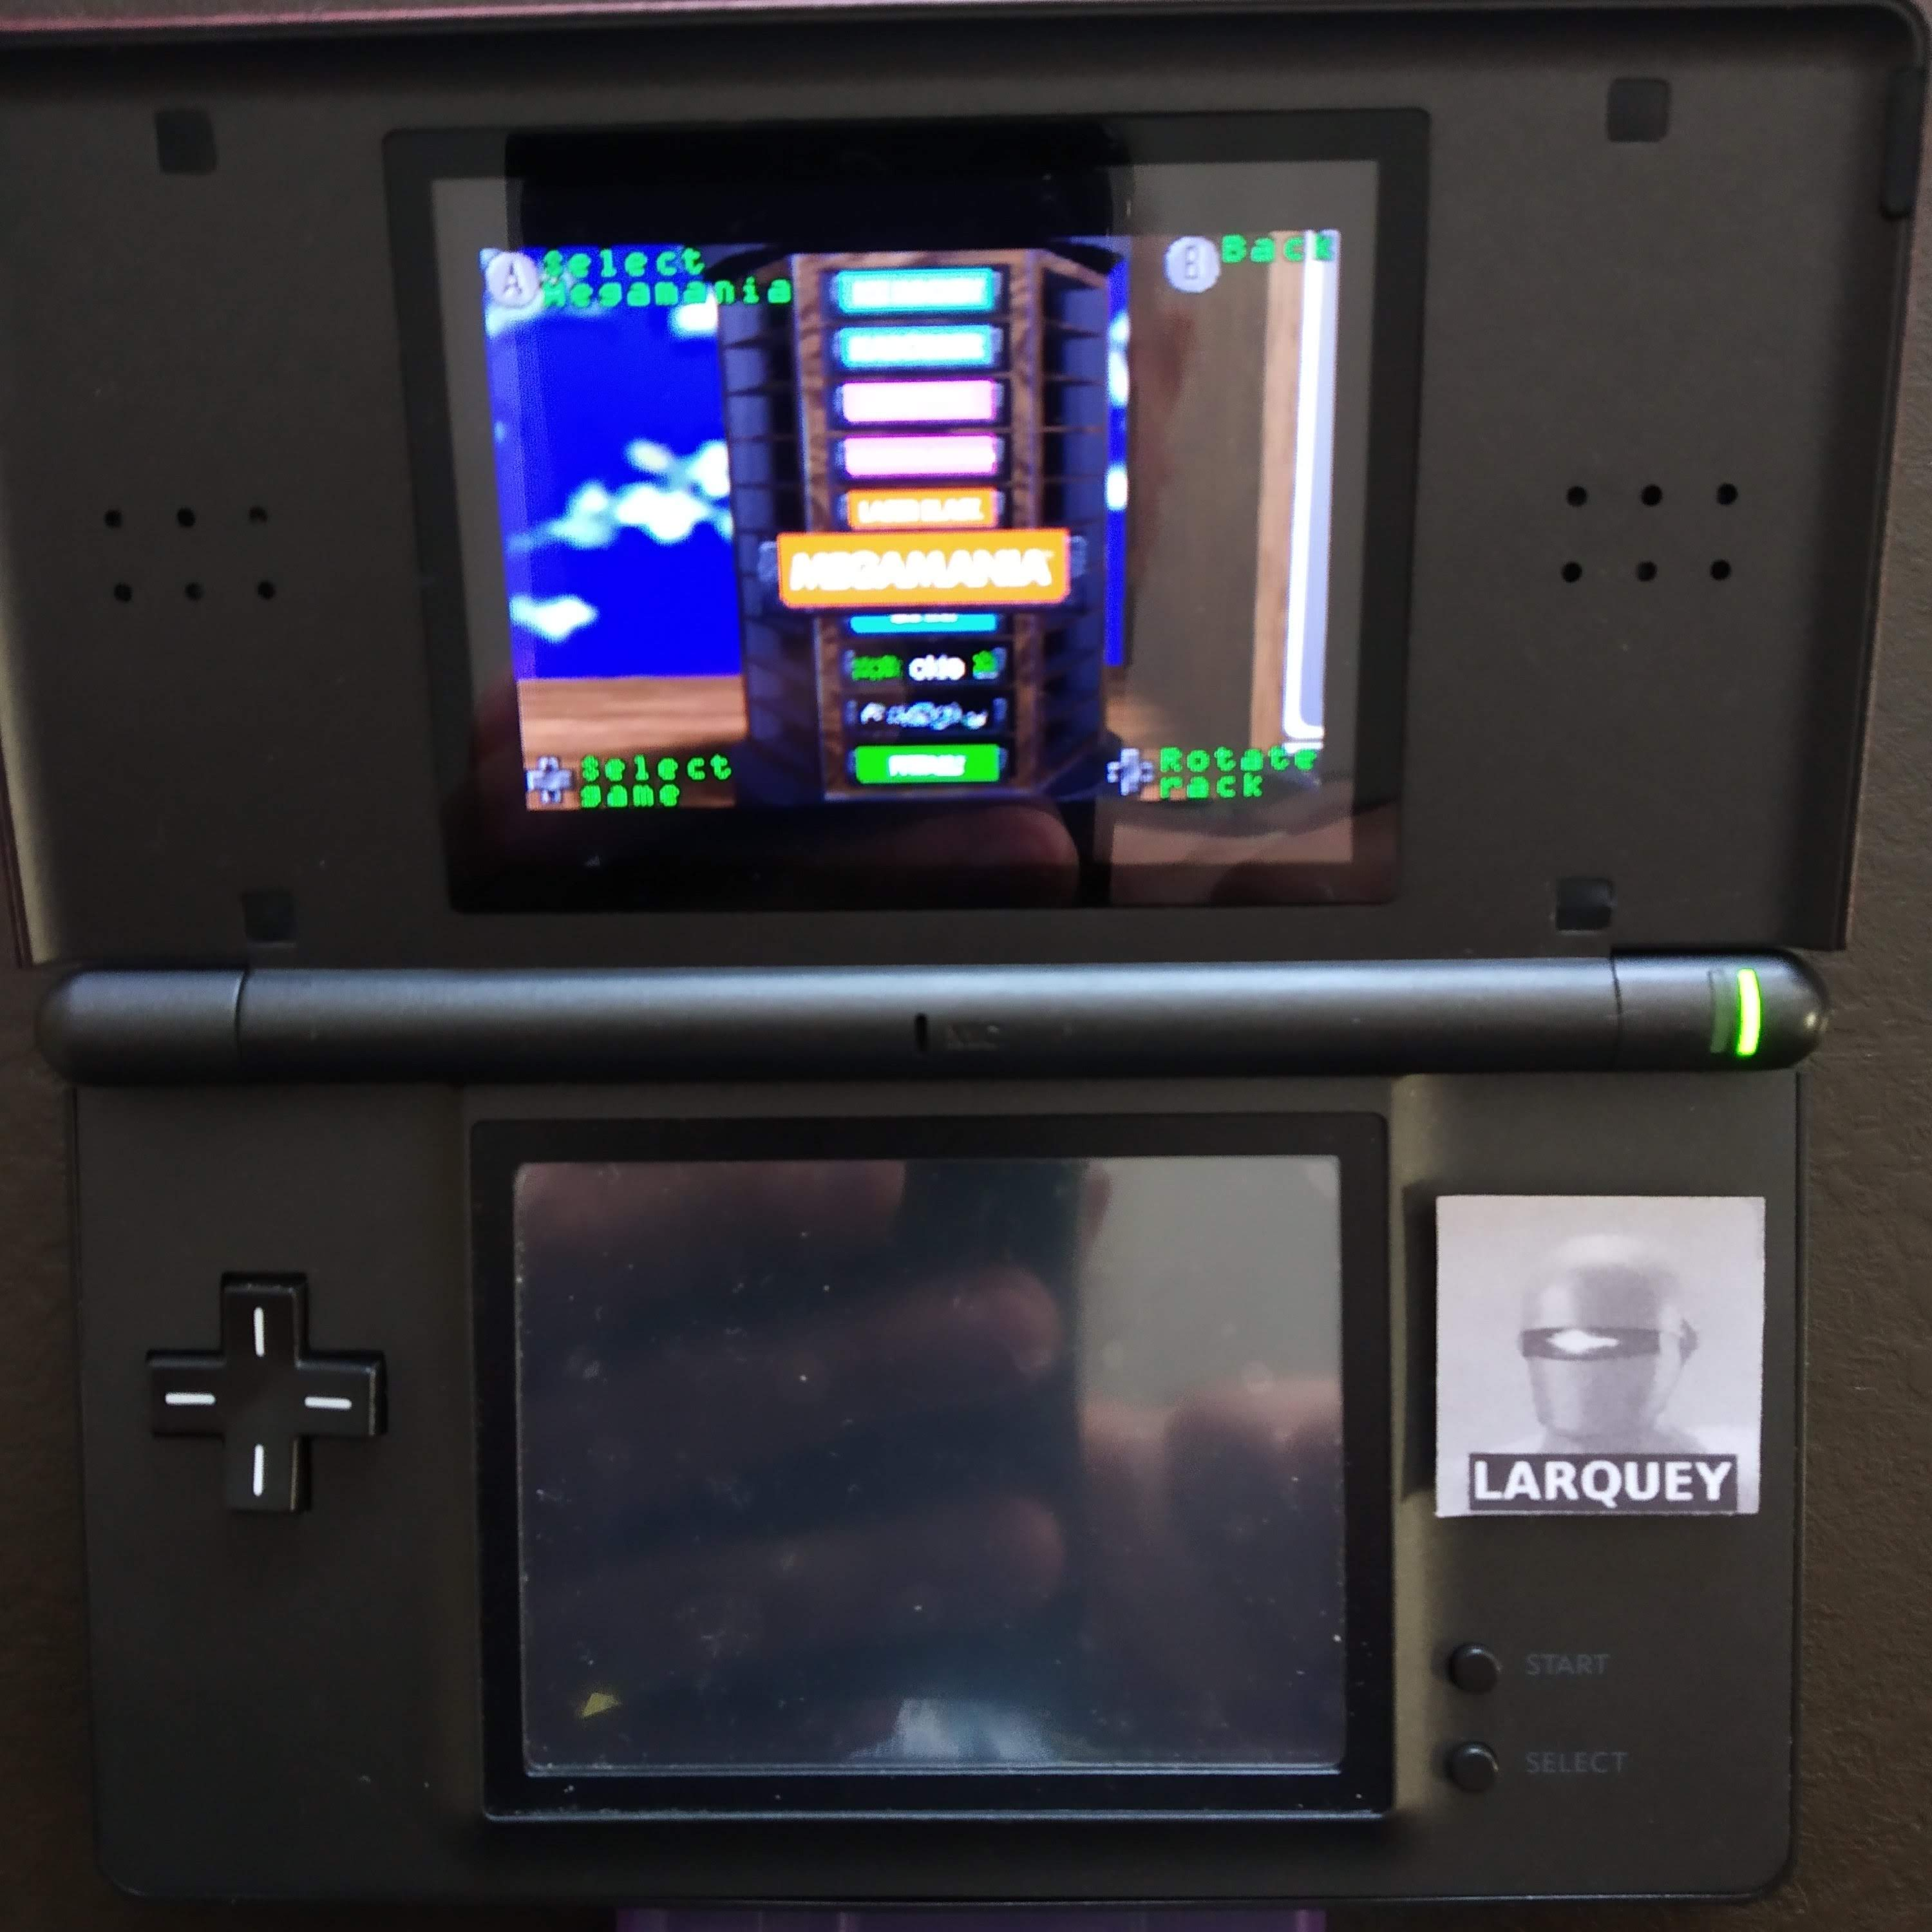 Larquey: Activision Anthology: Megamania [Game 1A] (GBA) 37,460 points on 2020-08-15 06:07:21